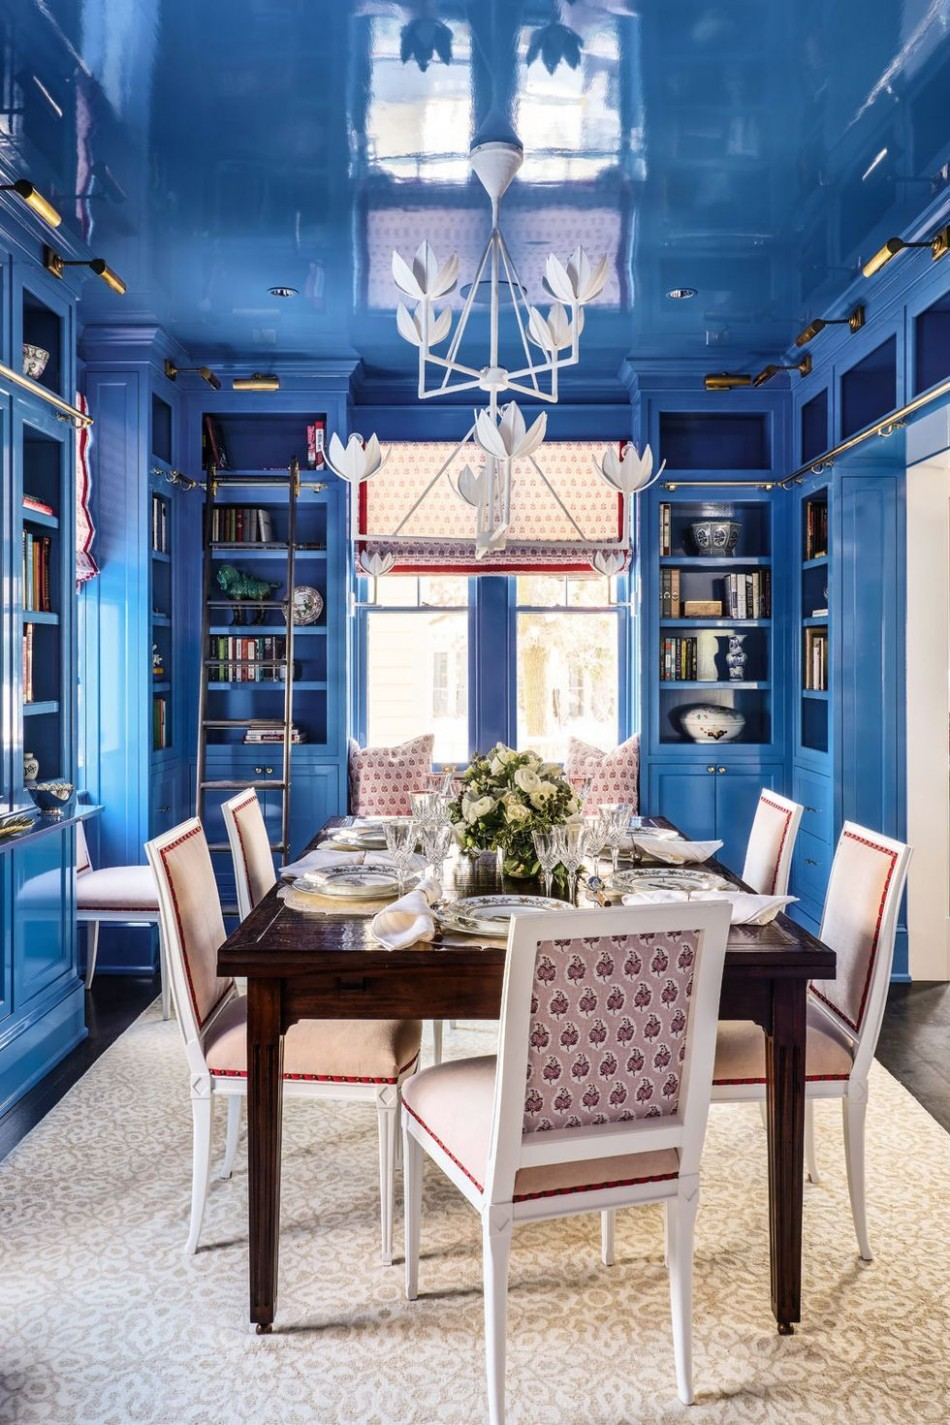 8 Best Dining Room Decorating Ideas, Furniture, Designs, and Pictures - Dining Room Ideas Blue